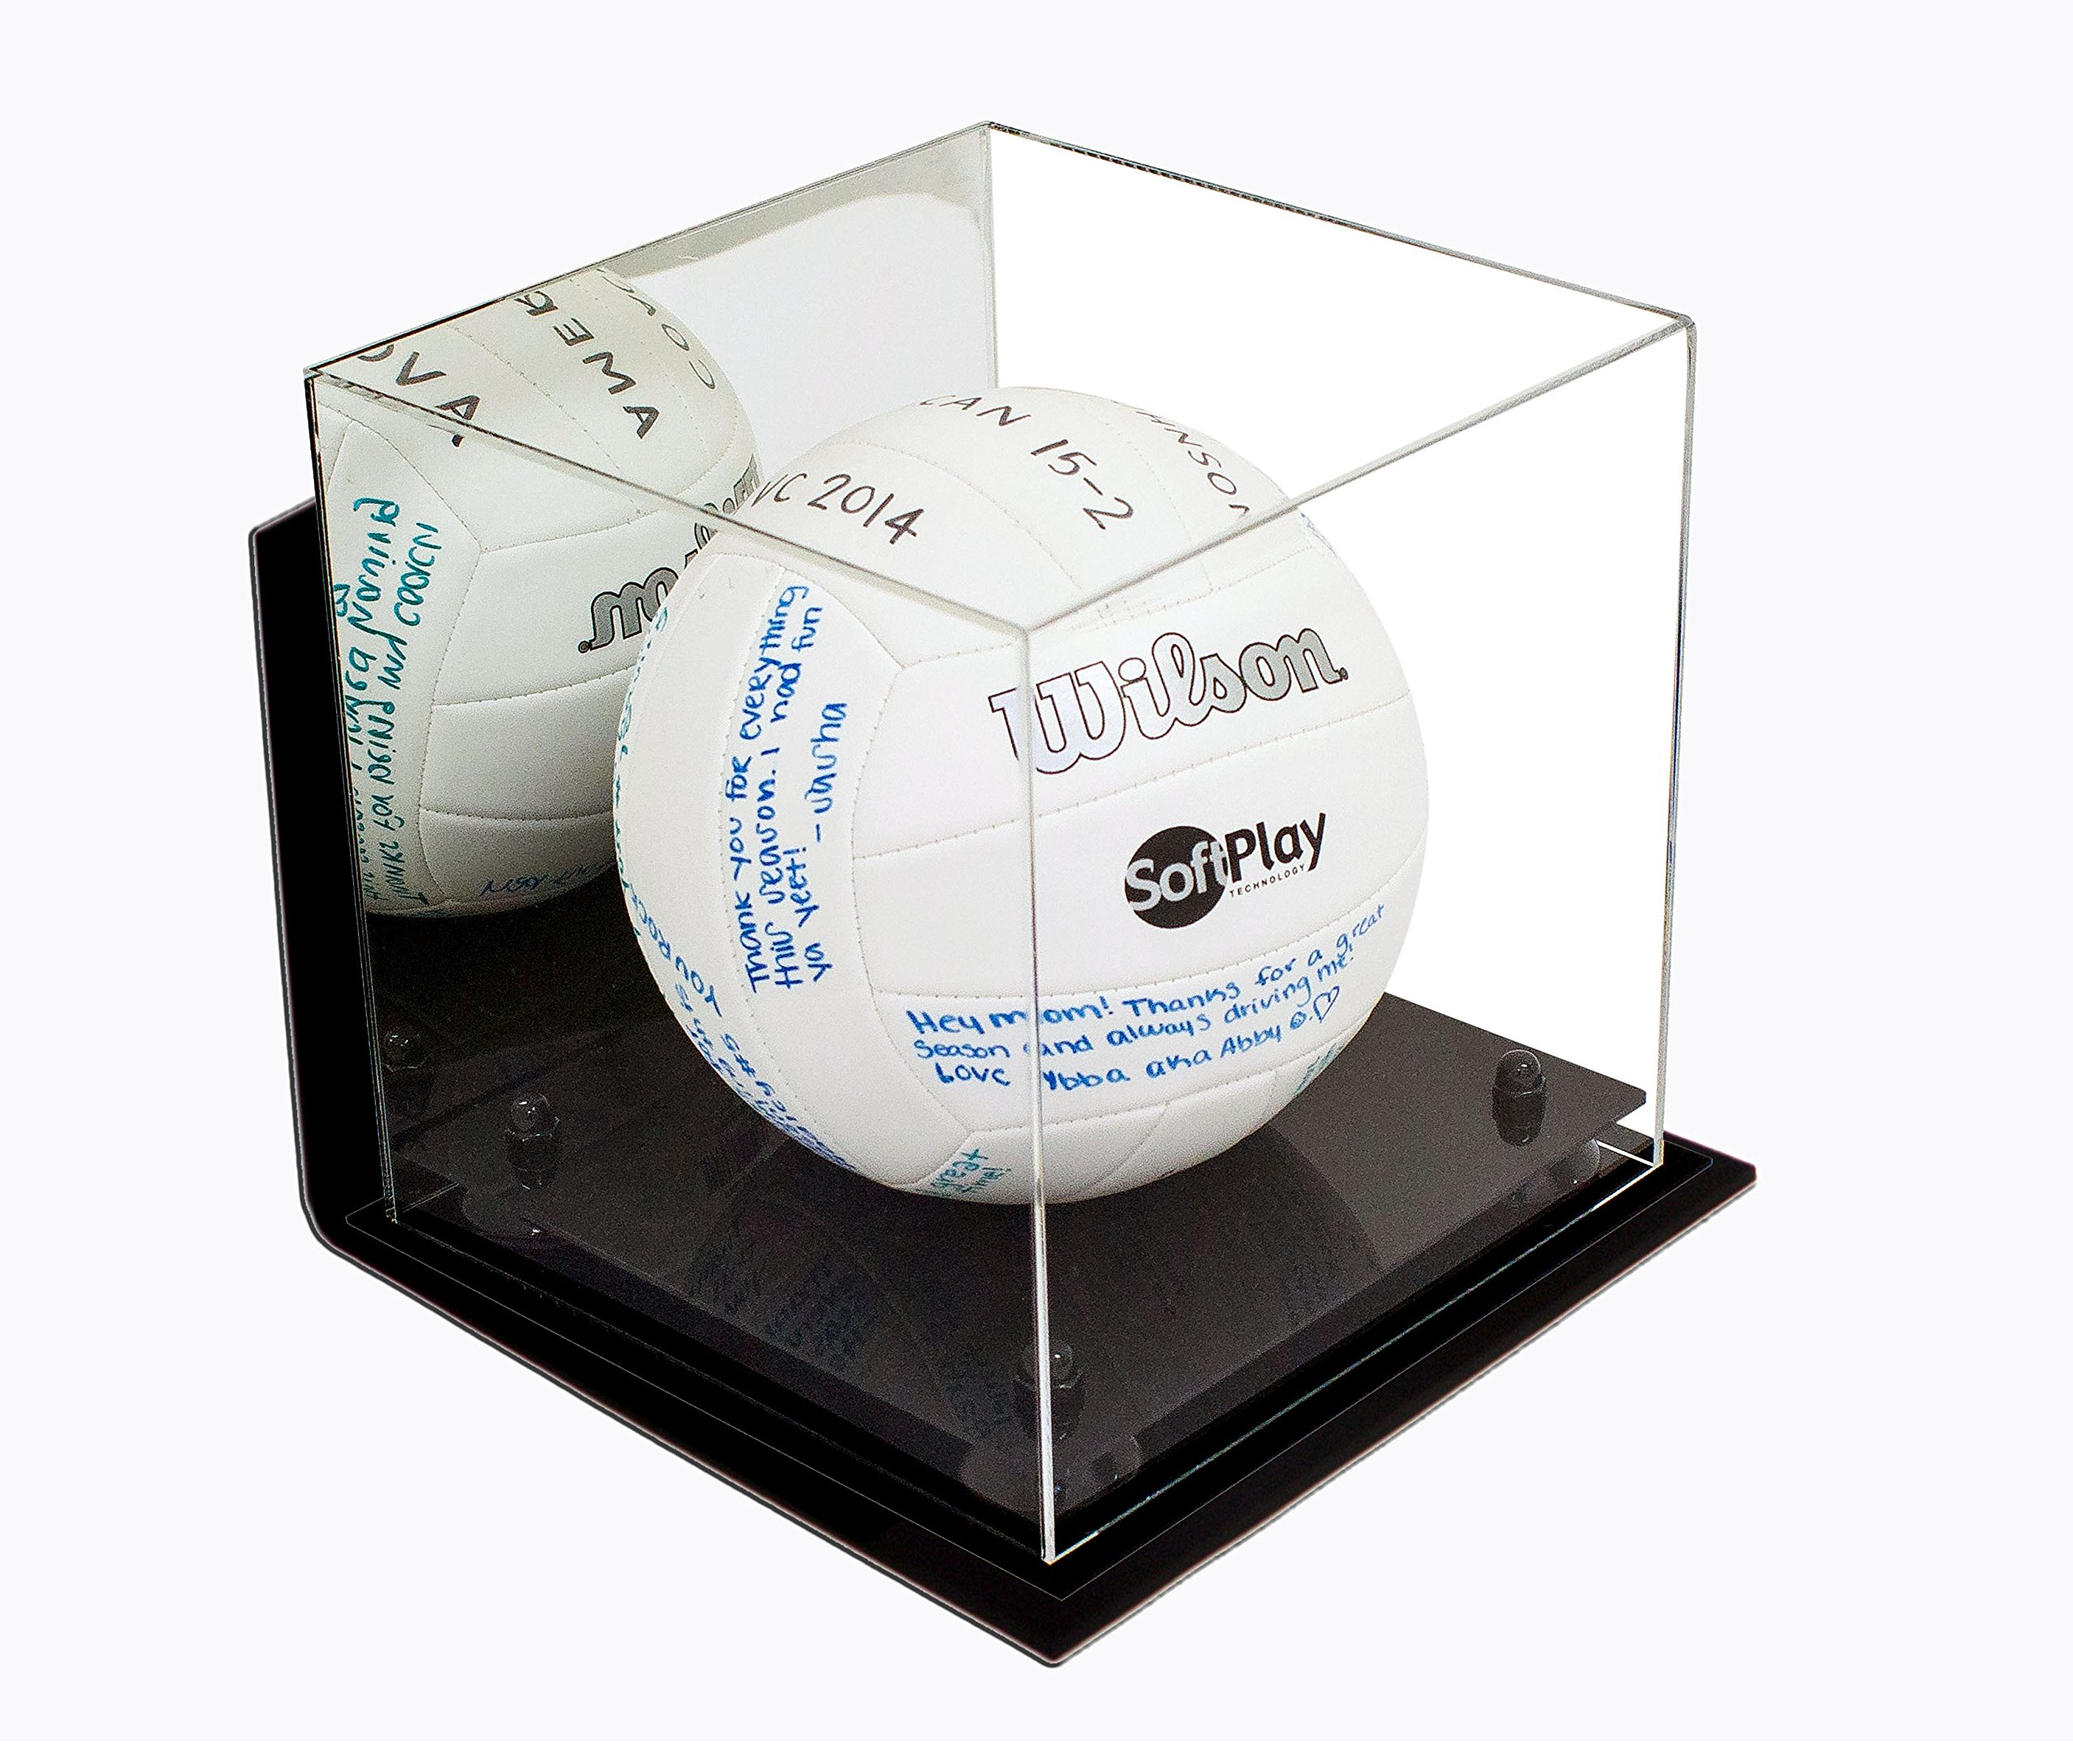 3f5fe83aa5a Deluxe Acrylic Volleyball Display Case with Black Risers Mirror and Wall  Mount (A027-BR)